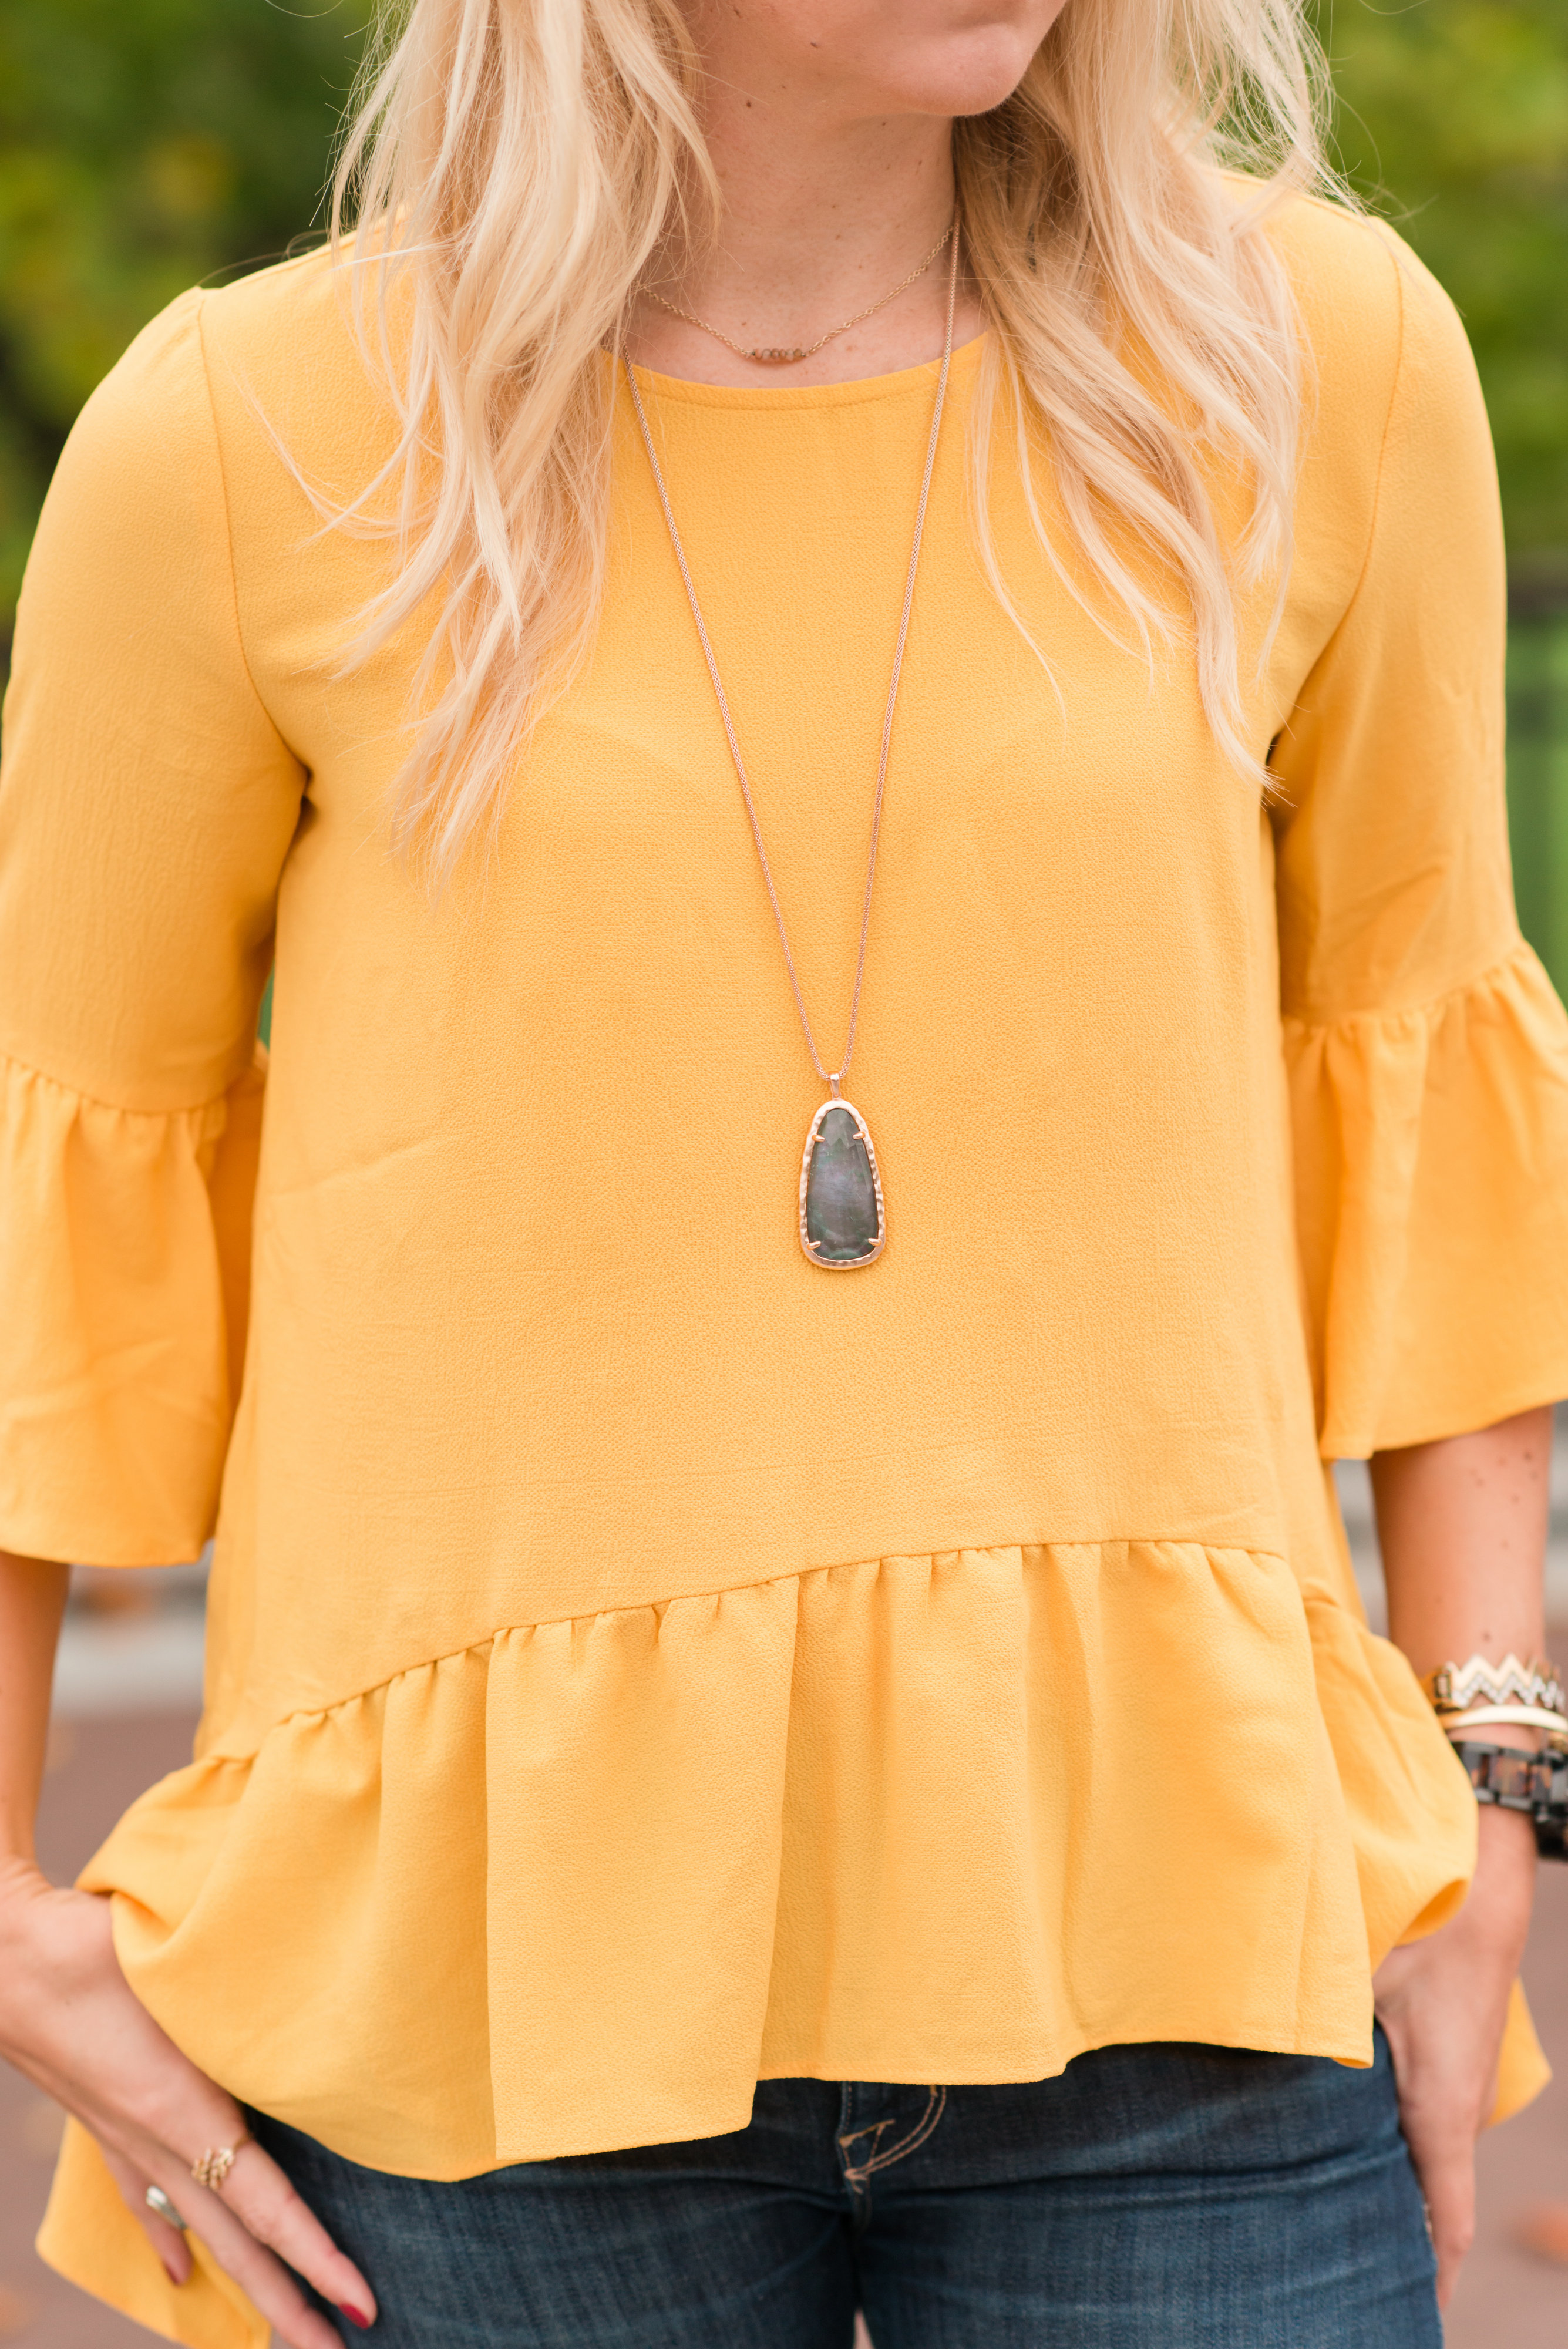 Kendra Scott Necklace Best Fashion Purchases of the Year - Sarah Camille's Scoop - SCsScoop.com